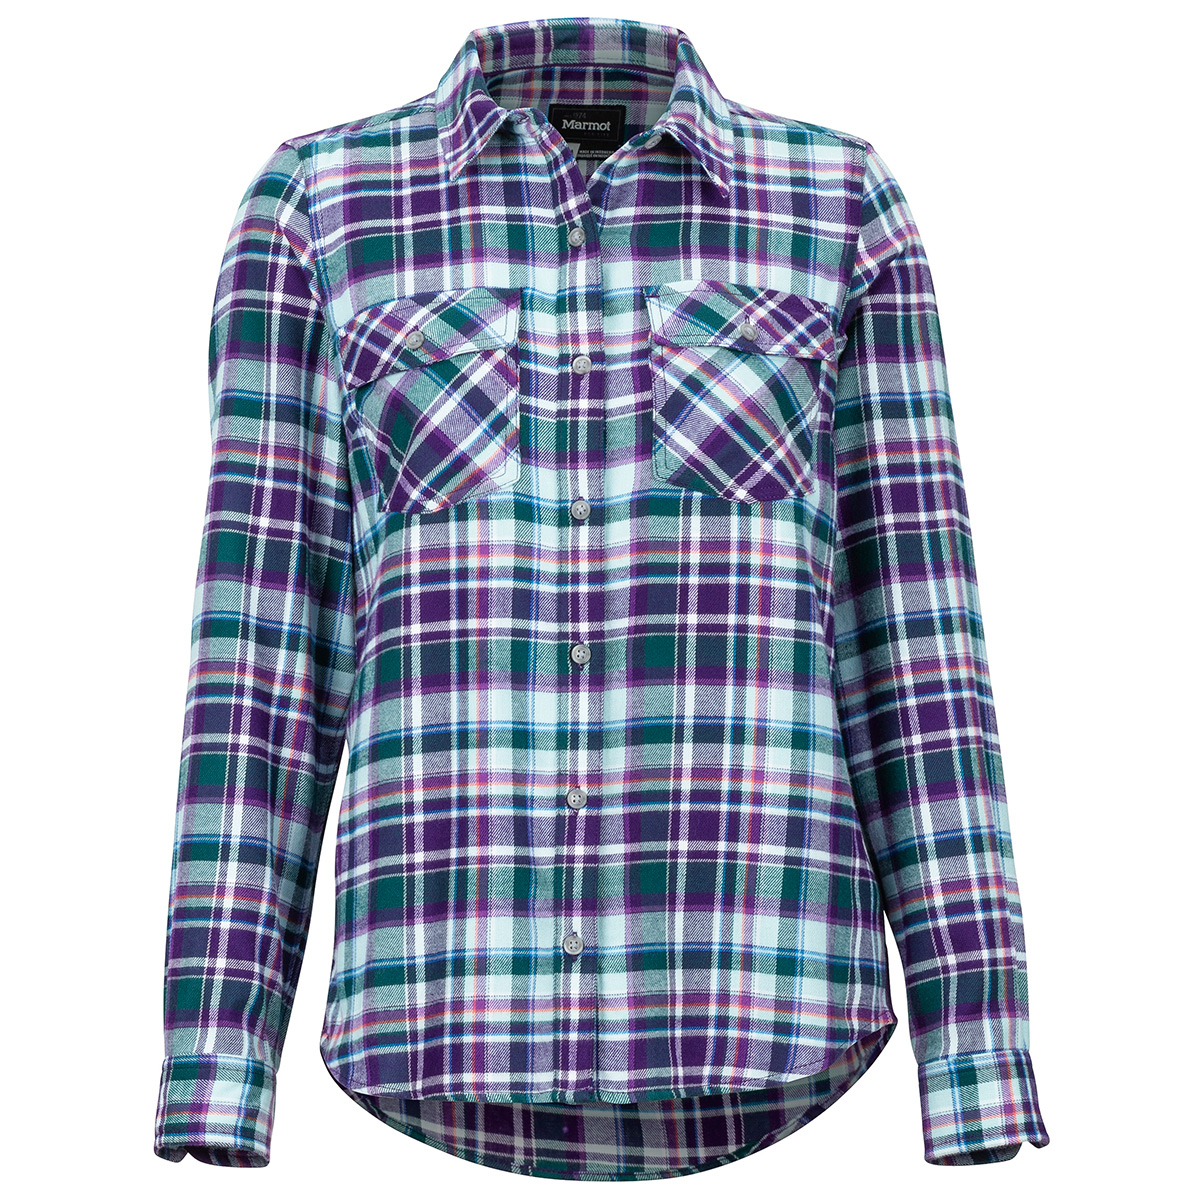 Marmot Women's Bridget Flannel Long-Sleeve Shirt - Purple, M